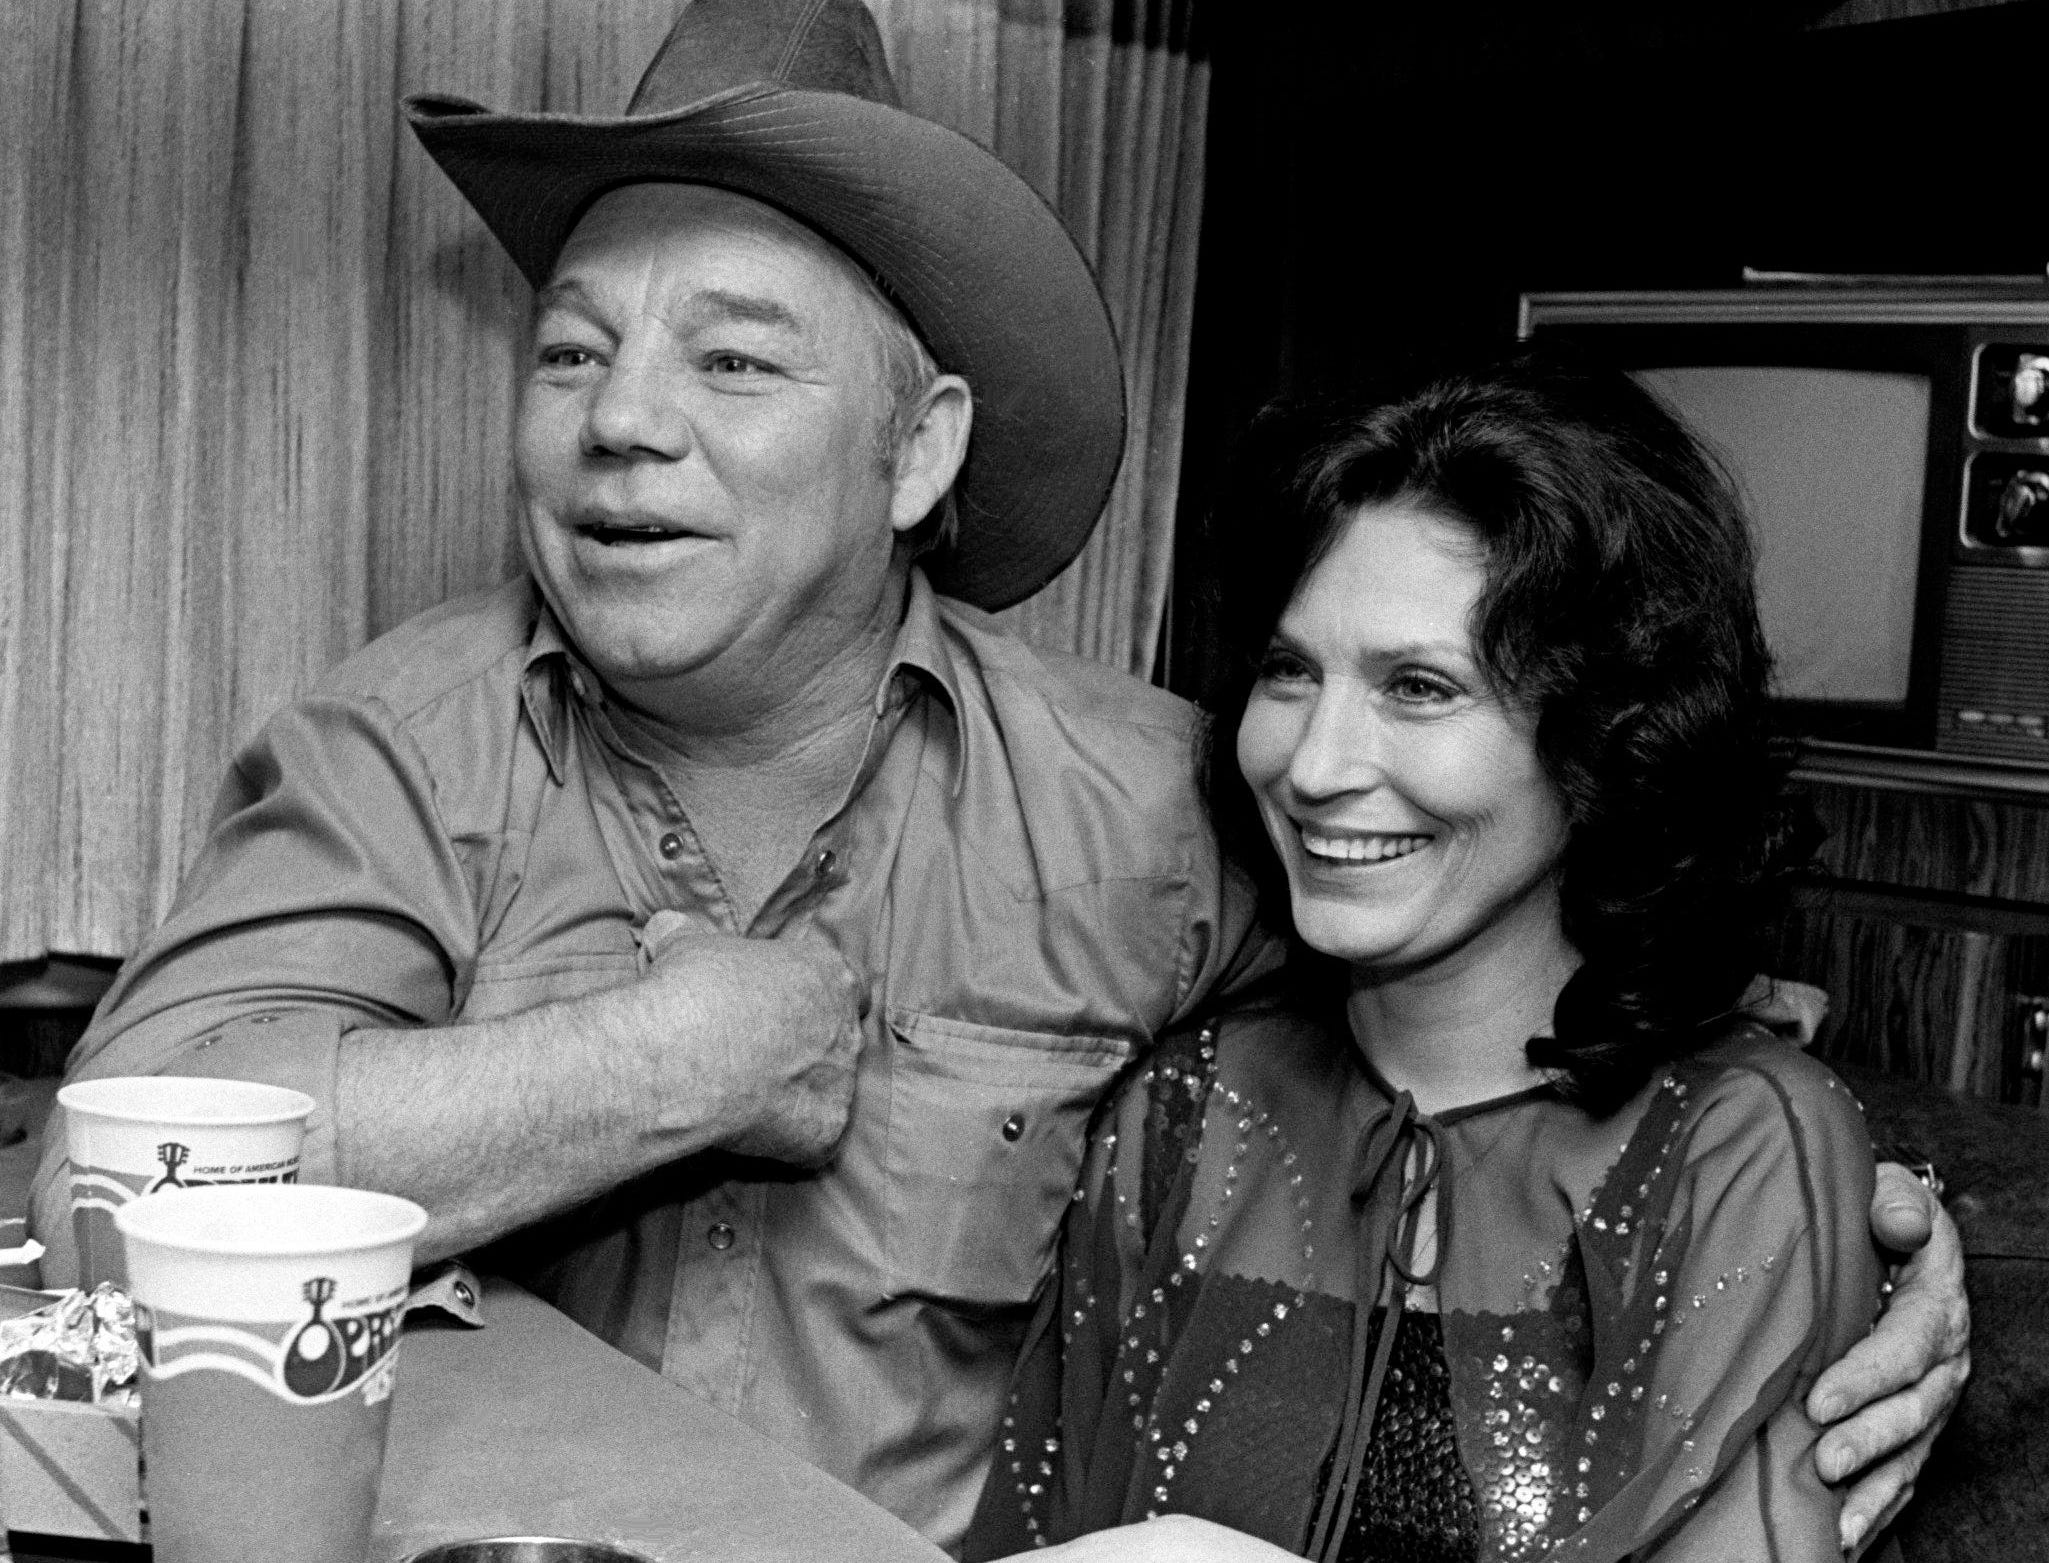 """Mooney Lynn, left, is with his wife, Loretta Lynn, in the cabin of Loretta's touring bus parked at Opry House March 1, 1980. They are waiting for the upcoming premiere in a couple days of """"Coal Miner's Daughter,"""" the movie version of Lynn's autobiography."""